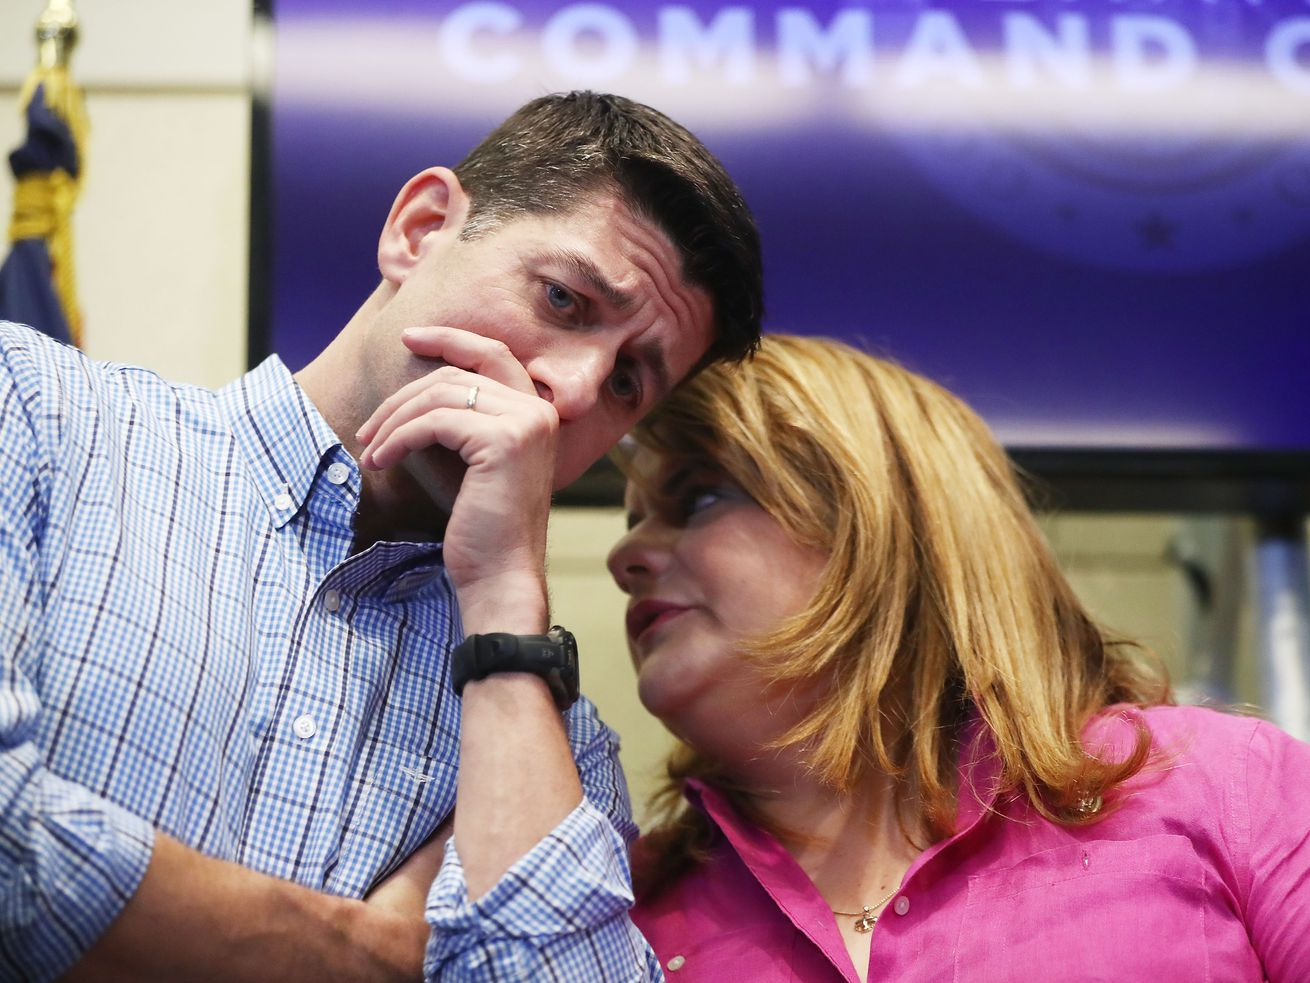 Puerto Rico's congressional delegate, Jenniffer González-Colón, had to beg House leaders to help Puerto Rico after Hurricane Maria.